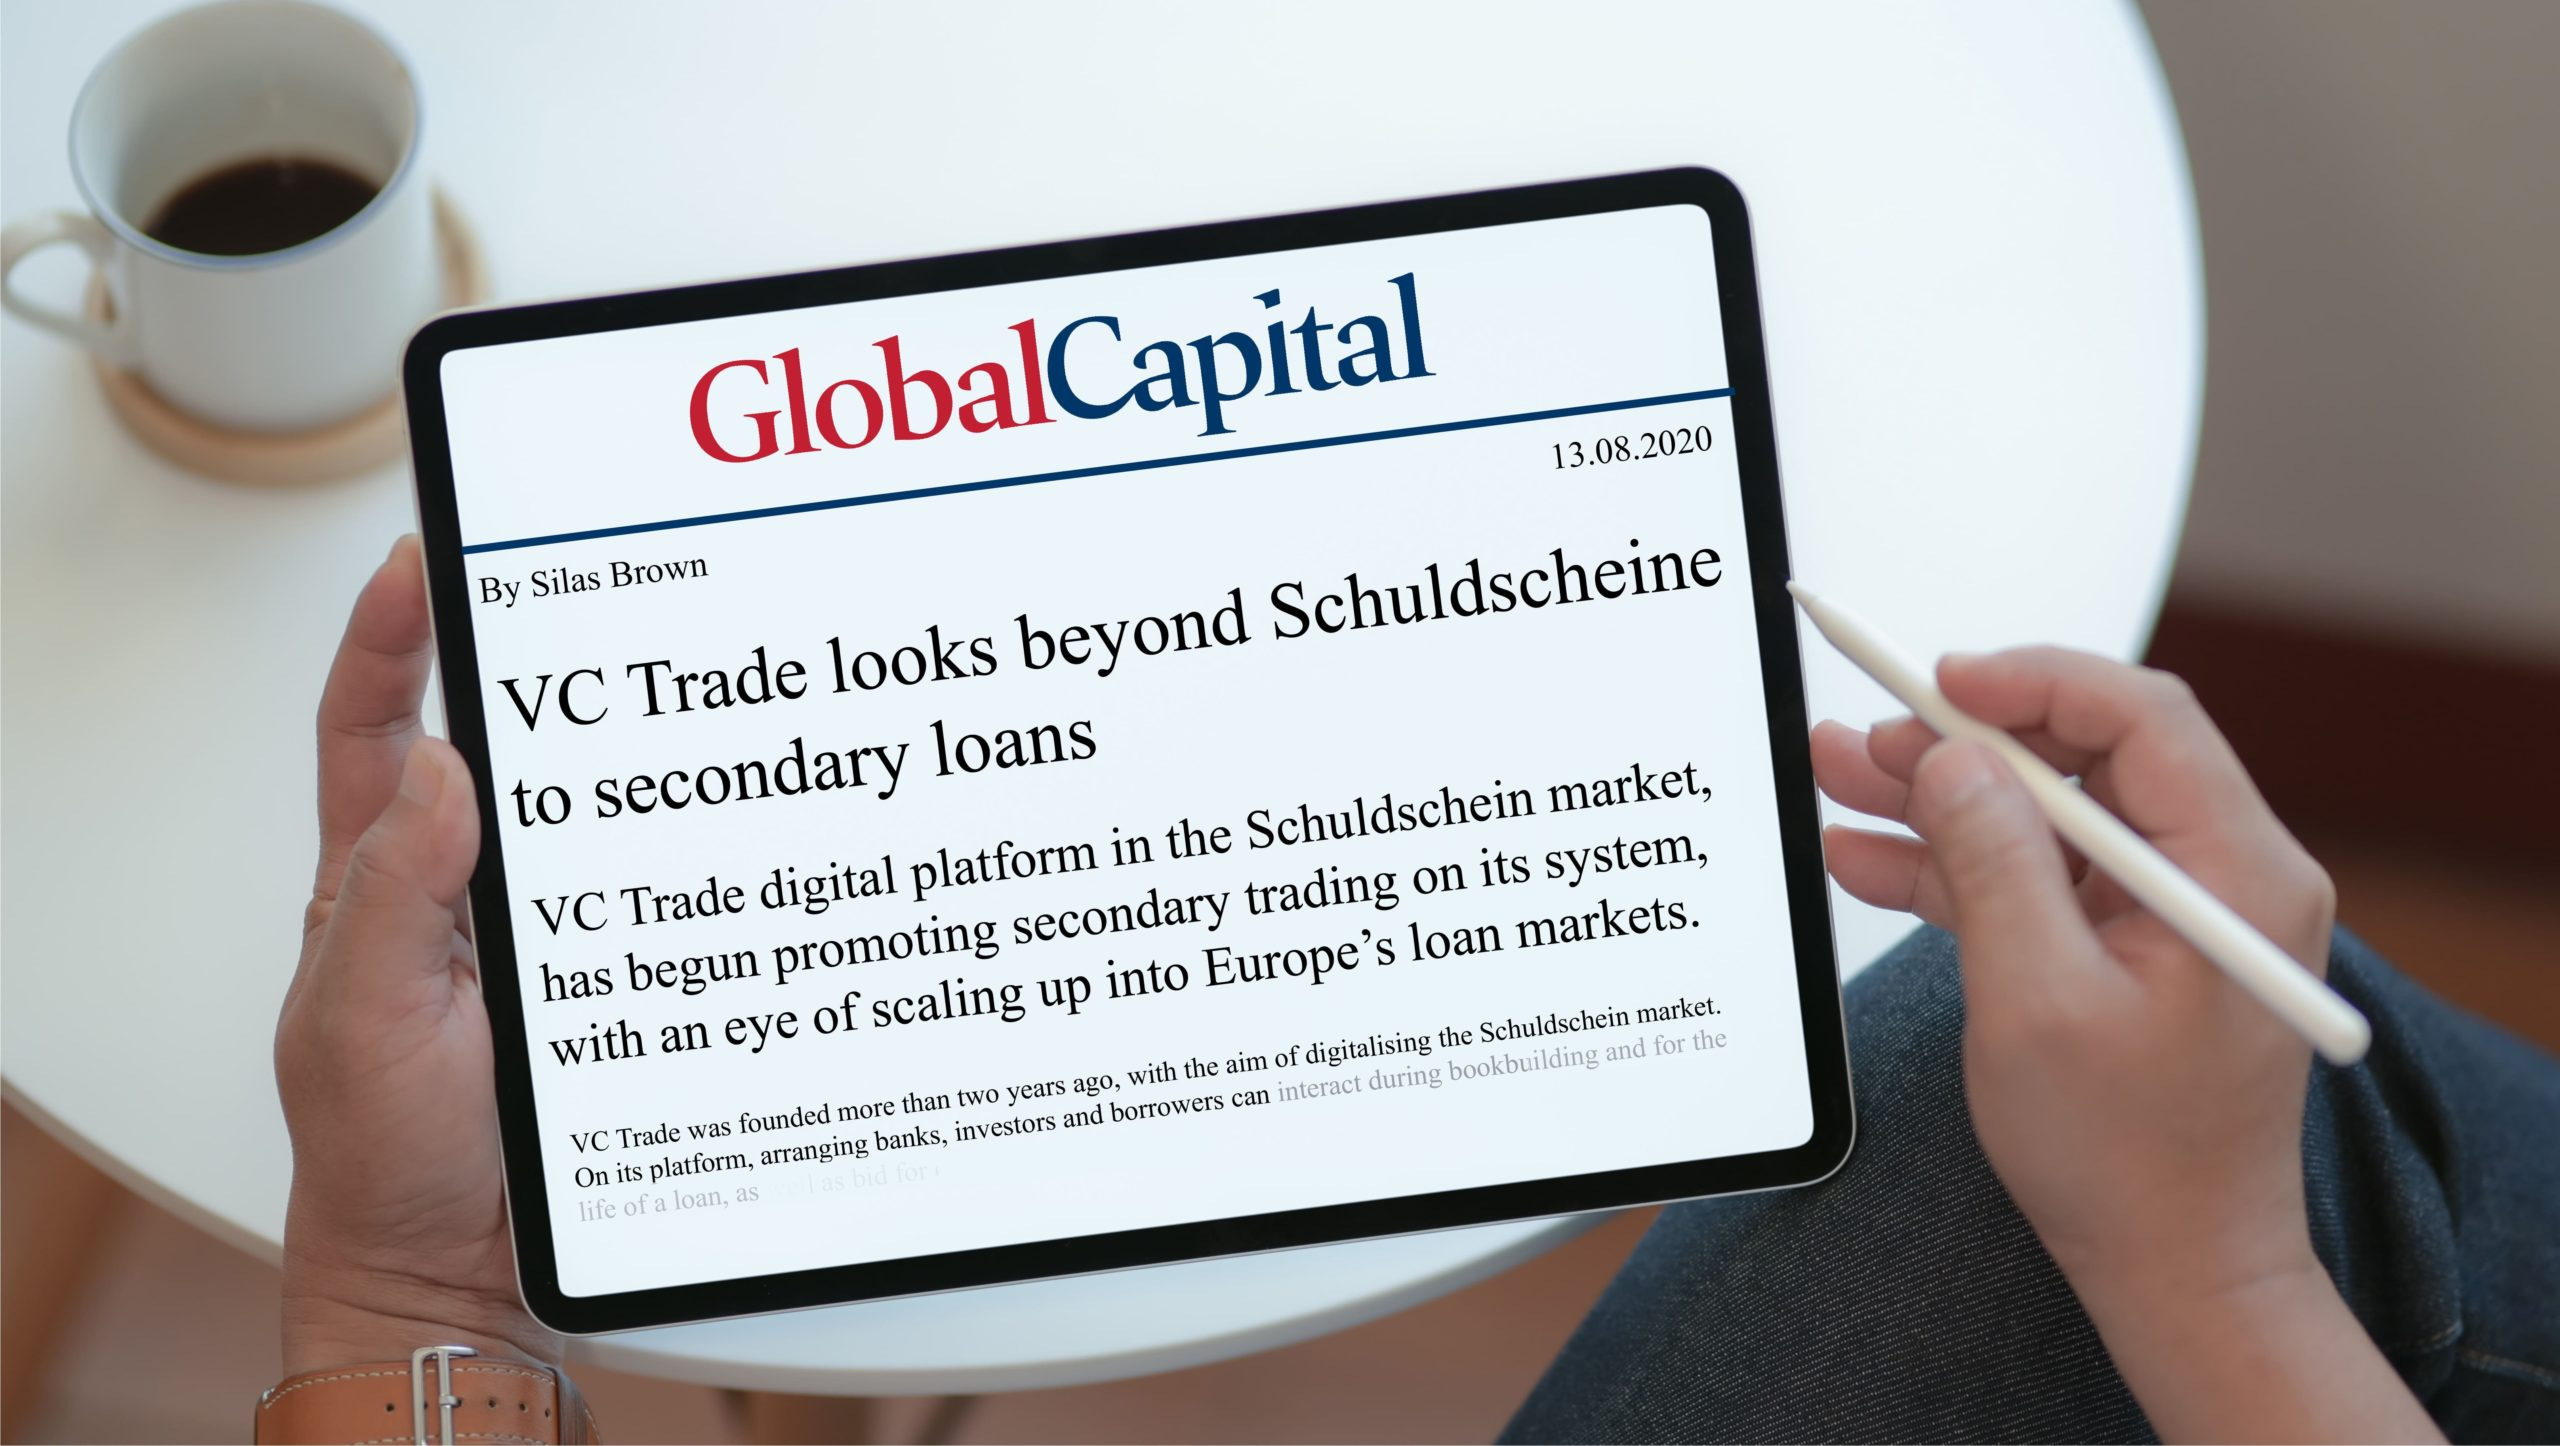 vc trade looks beyond Schuldscheine to secondary loans